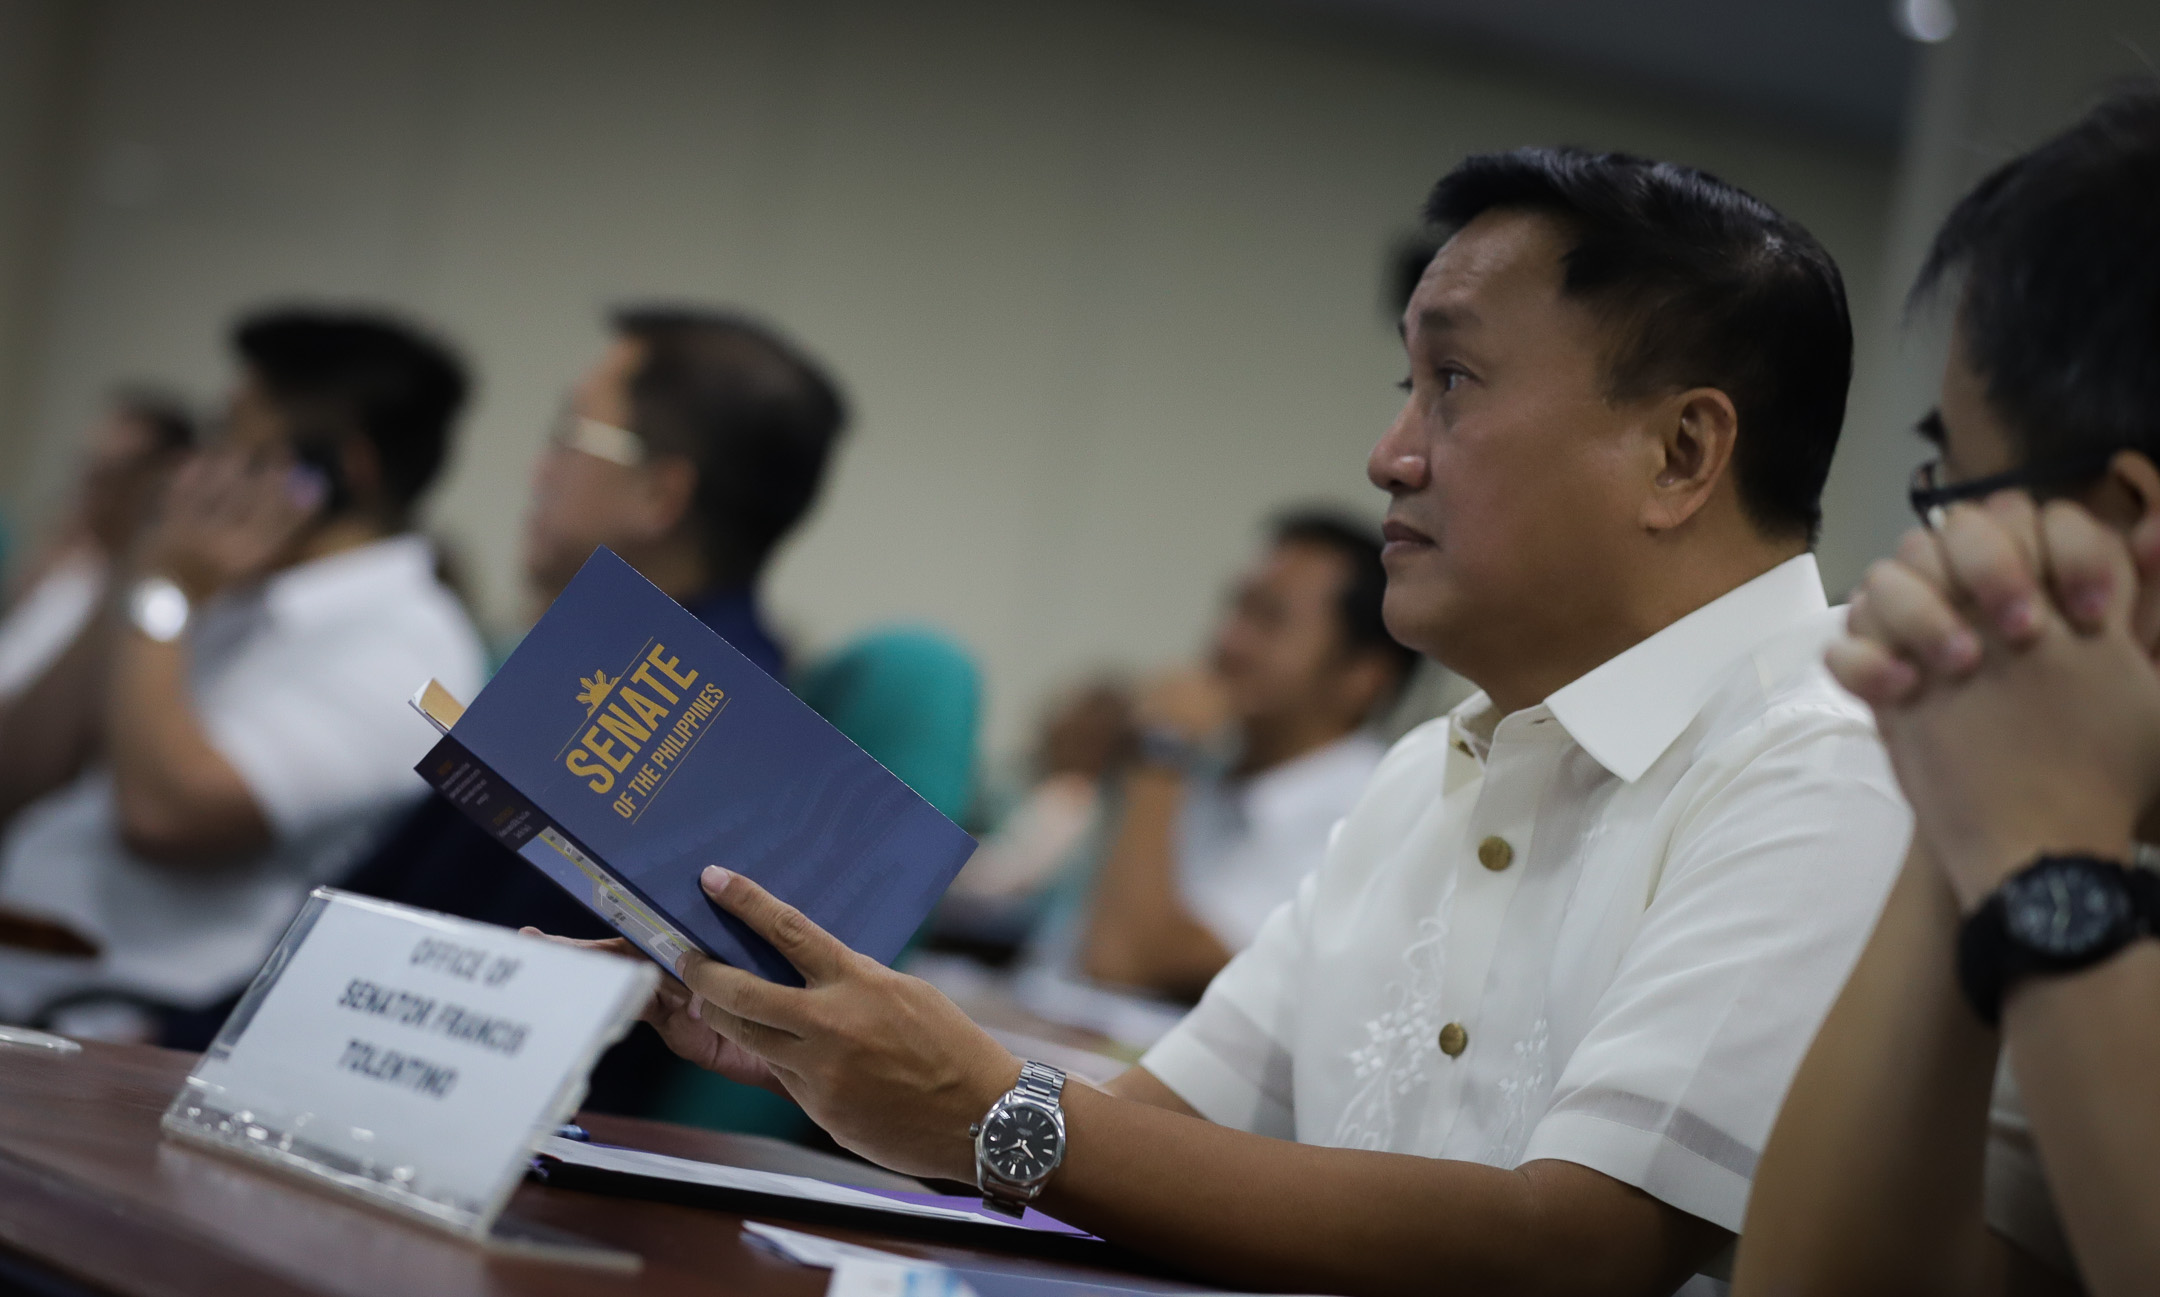 EARLY BIRD. Senator-elect Francis Tolentino is the first to arrive at the briefing for  neophyte senators on June 25, 209. Photo by Jospeh Vidal/Senate PRIB